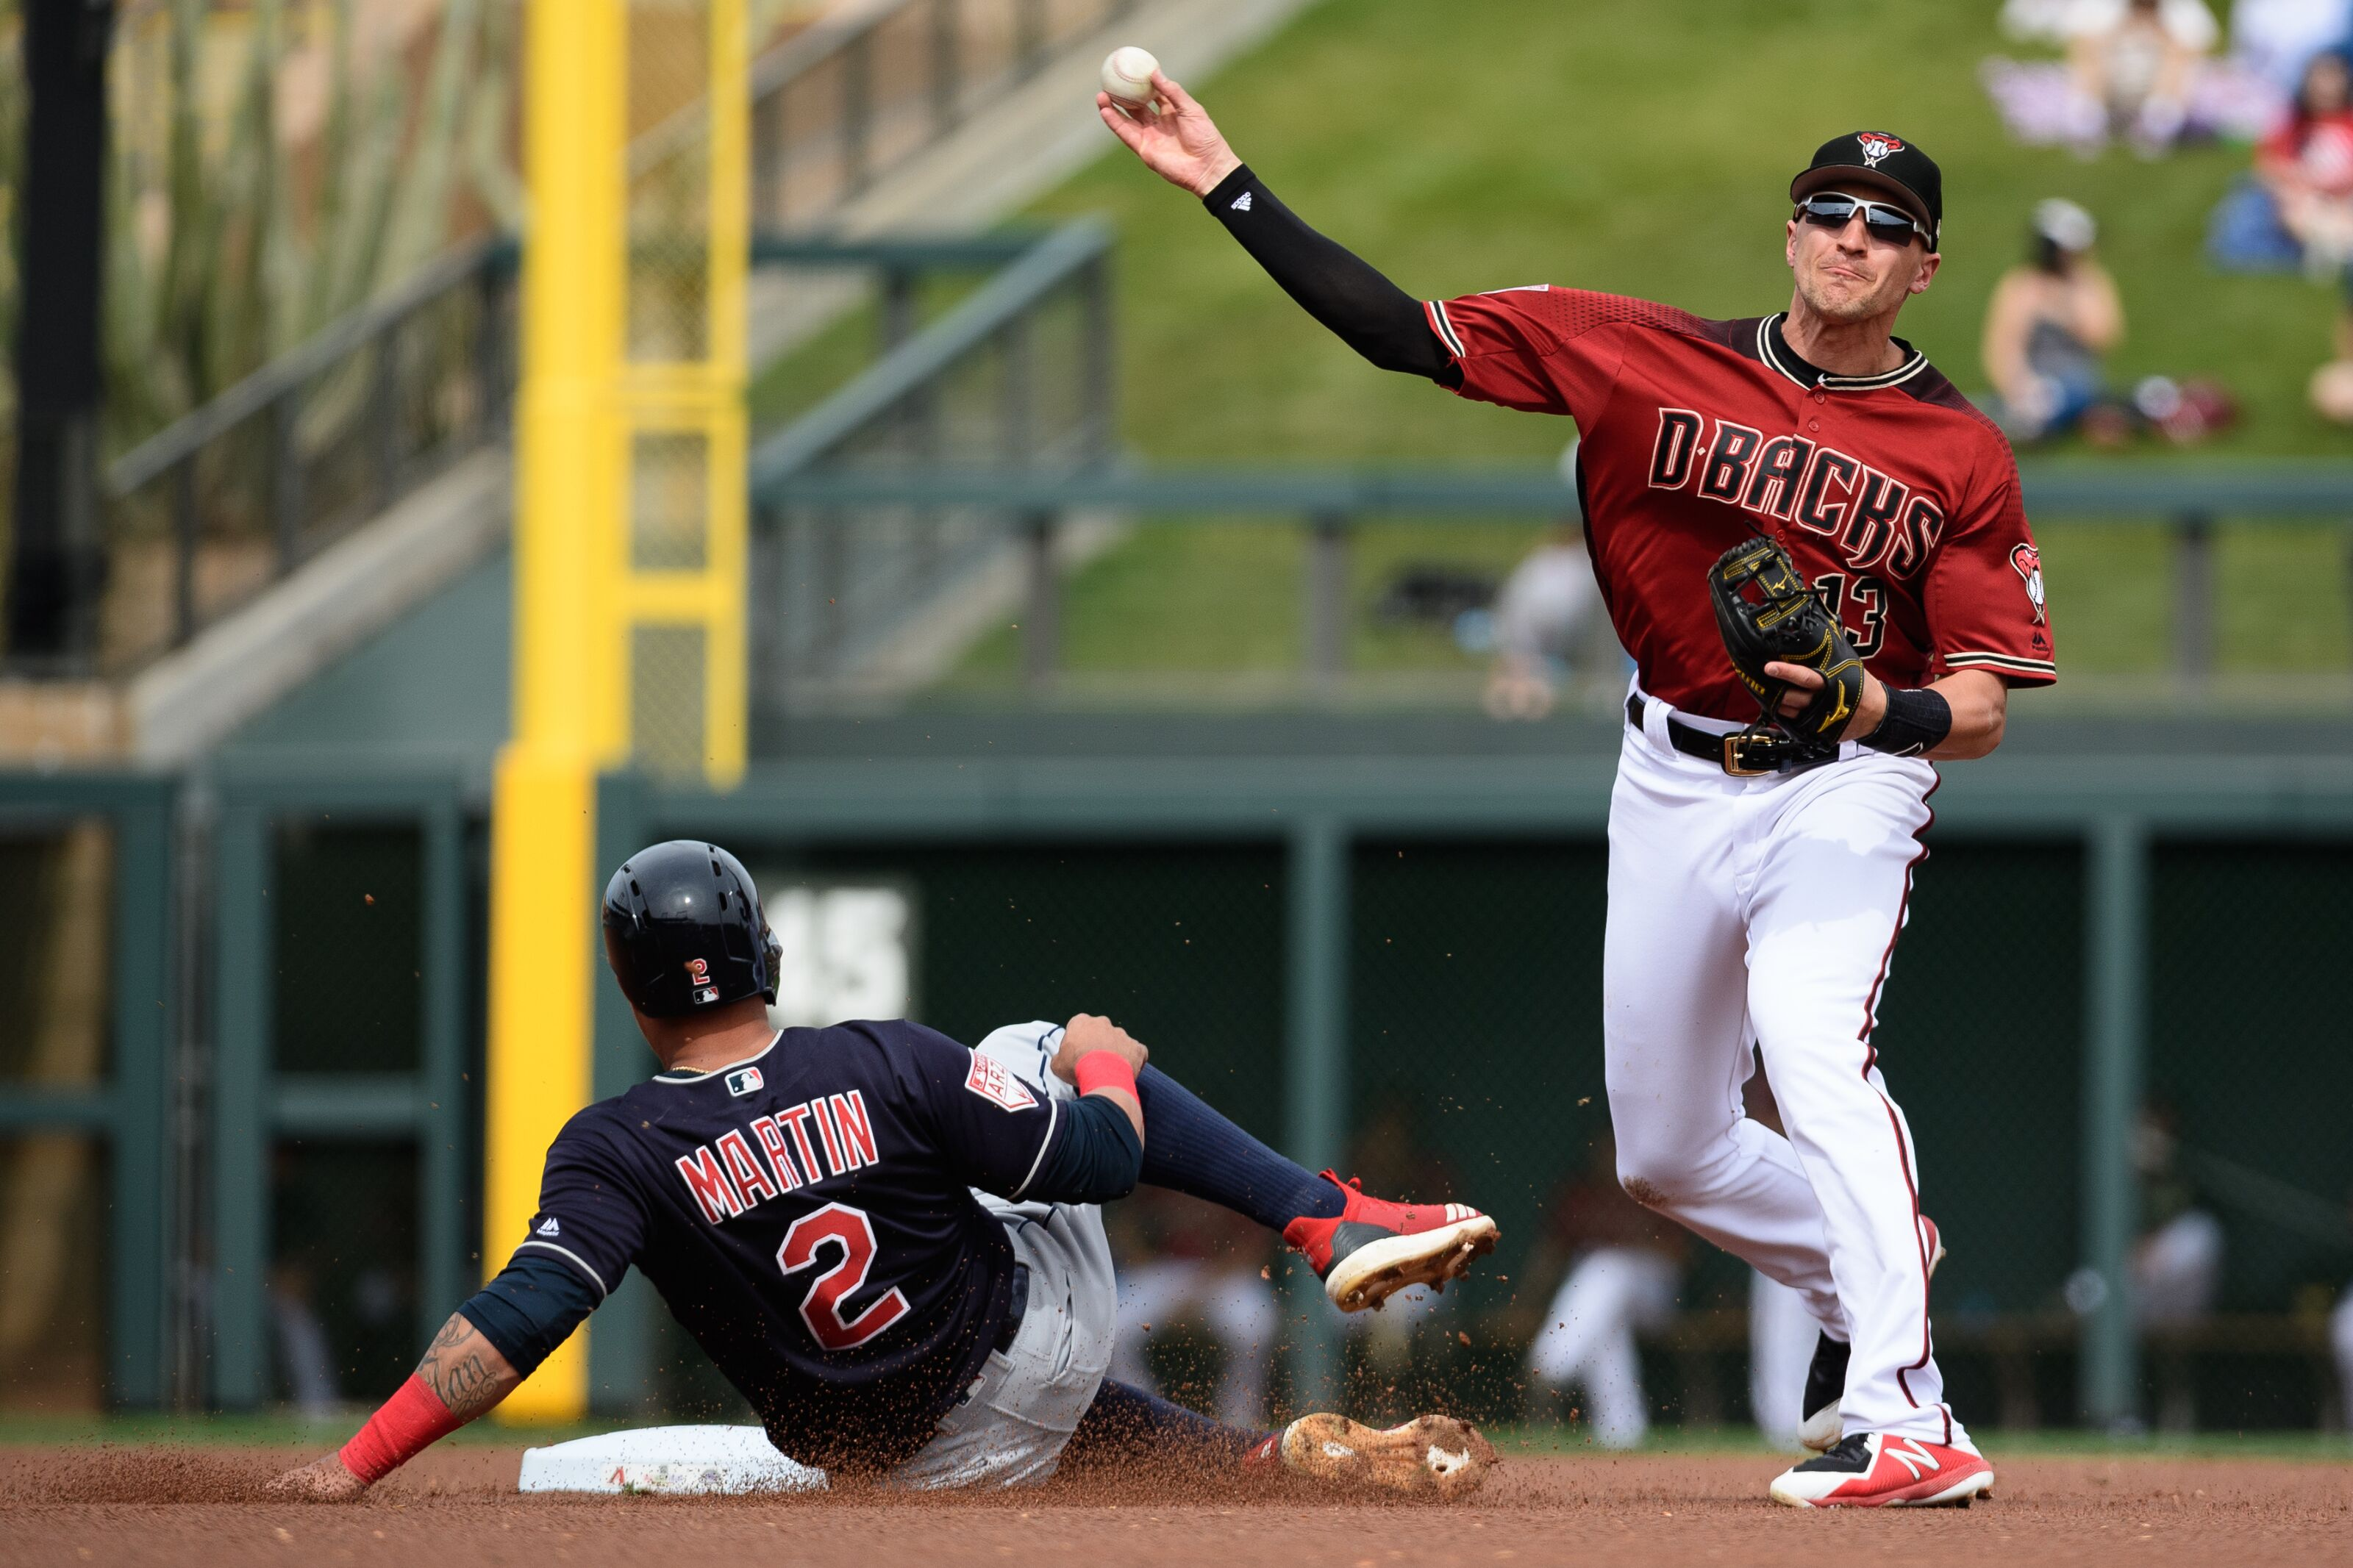 Cleveland Indians: Leonys Martin is proving he has serious potential